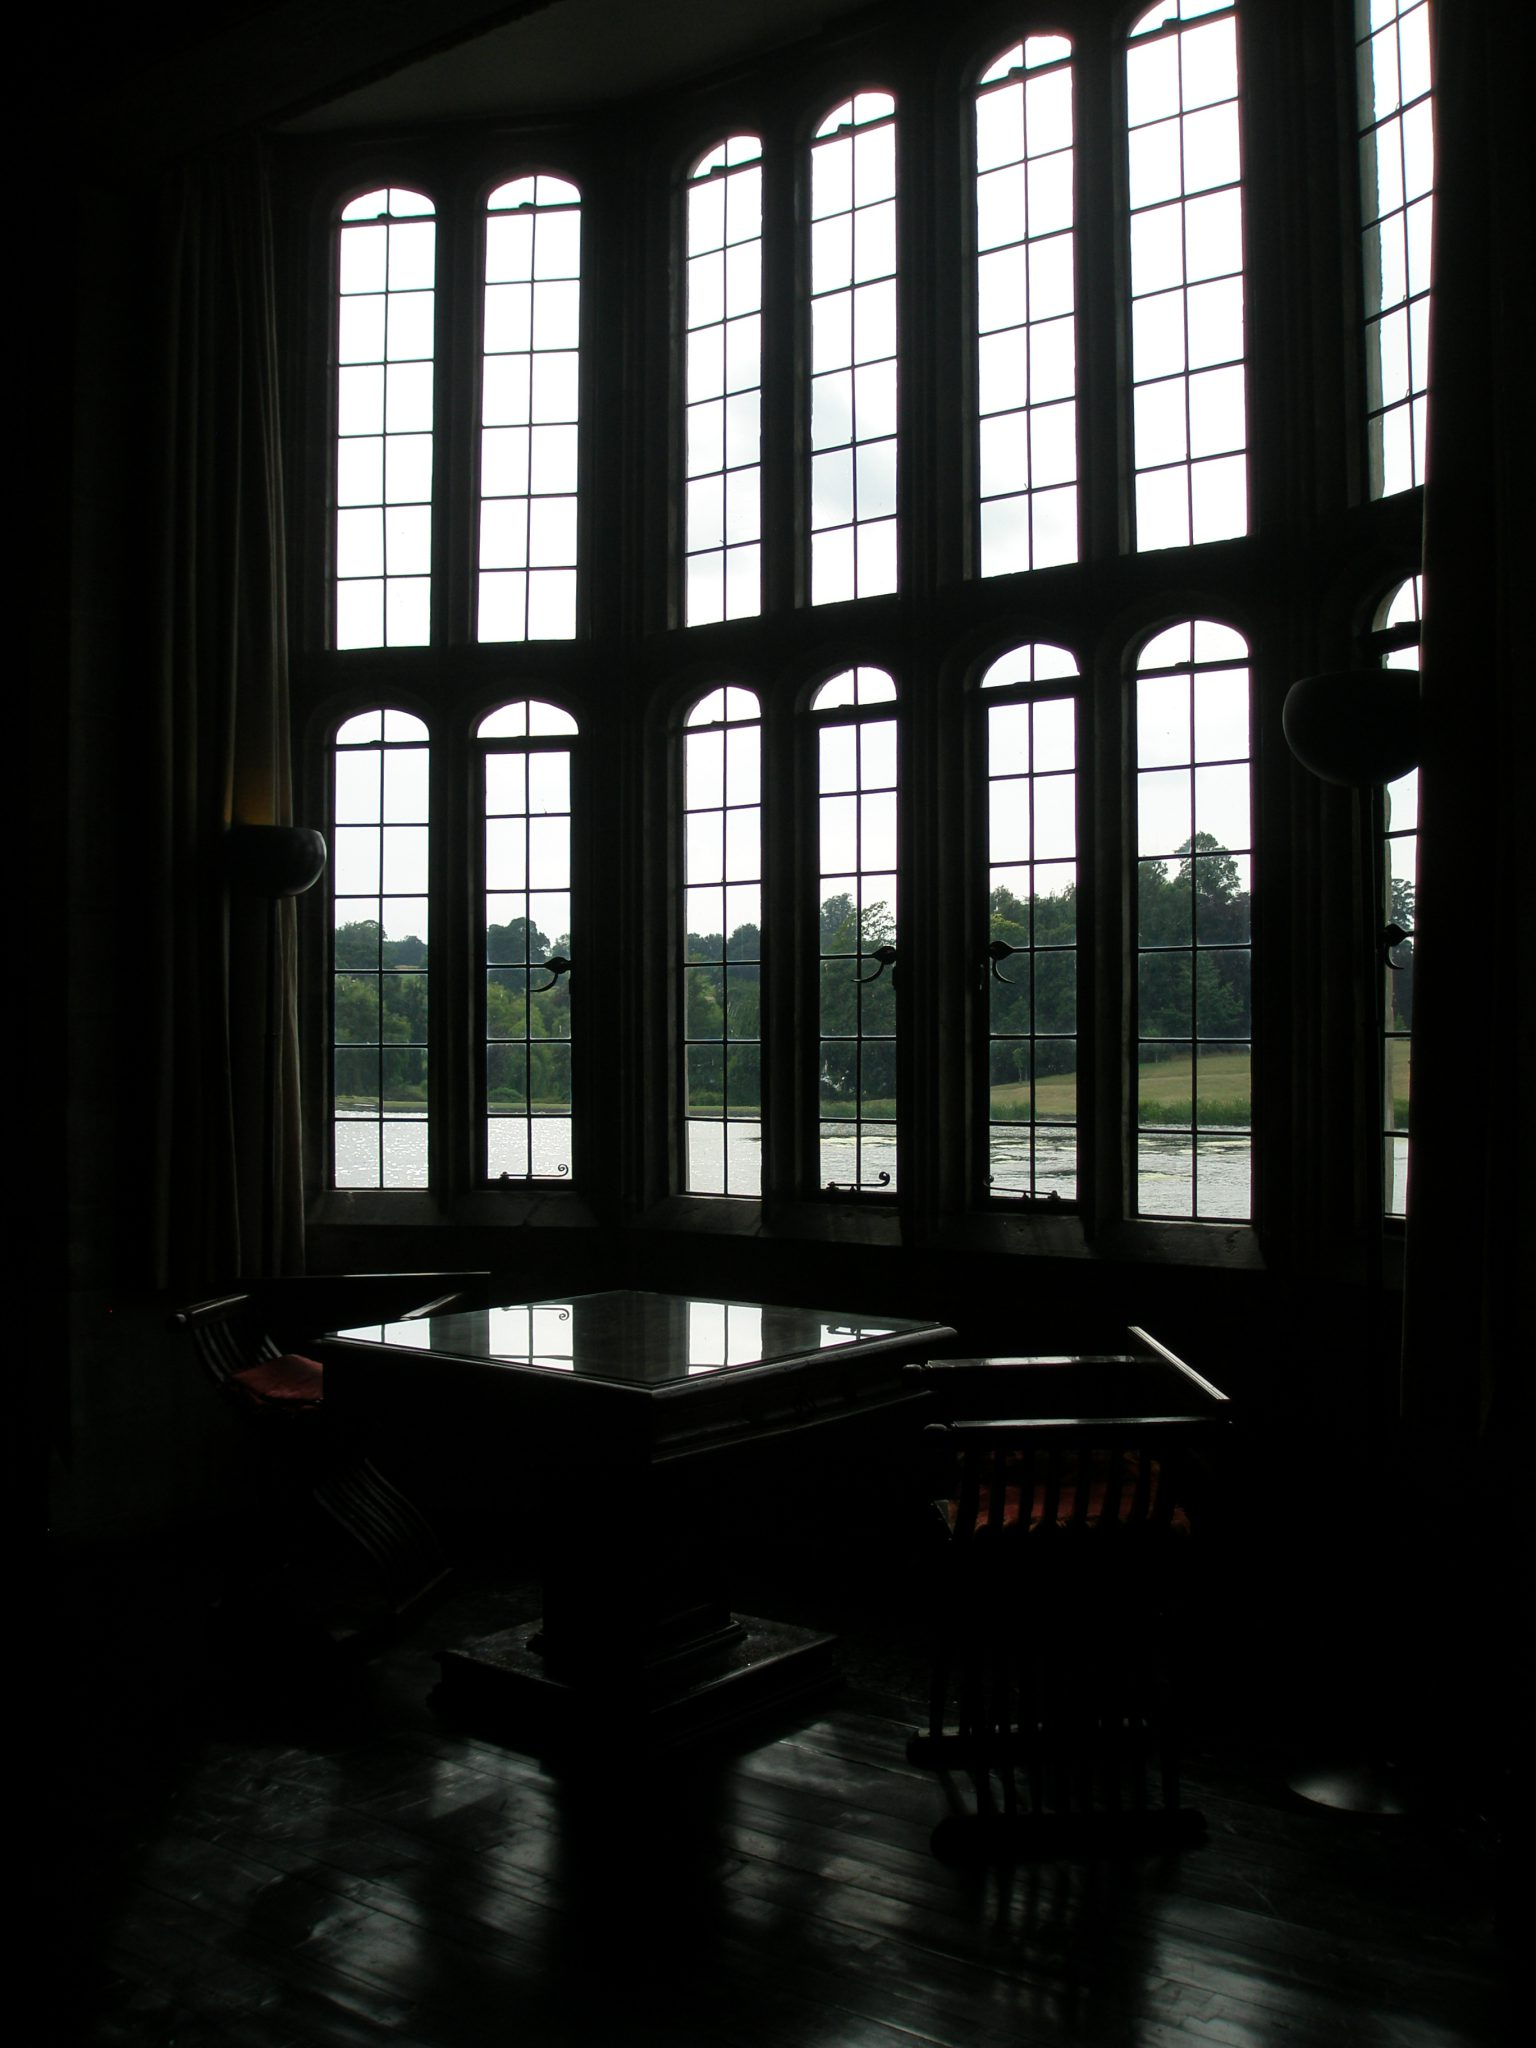 Bay windows in the Banqueting Hall. Prior to Henry's arrival, the narrow arrow-slits that had served as windows in the Hall were replaced with the generous expanses of glass that now overlook the moat.